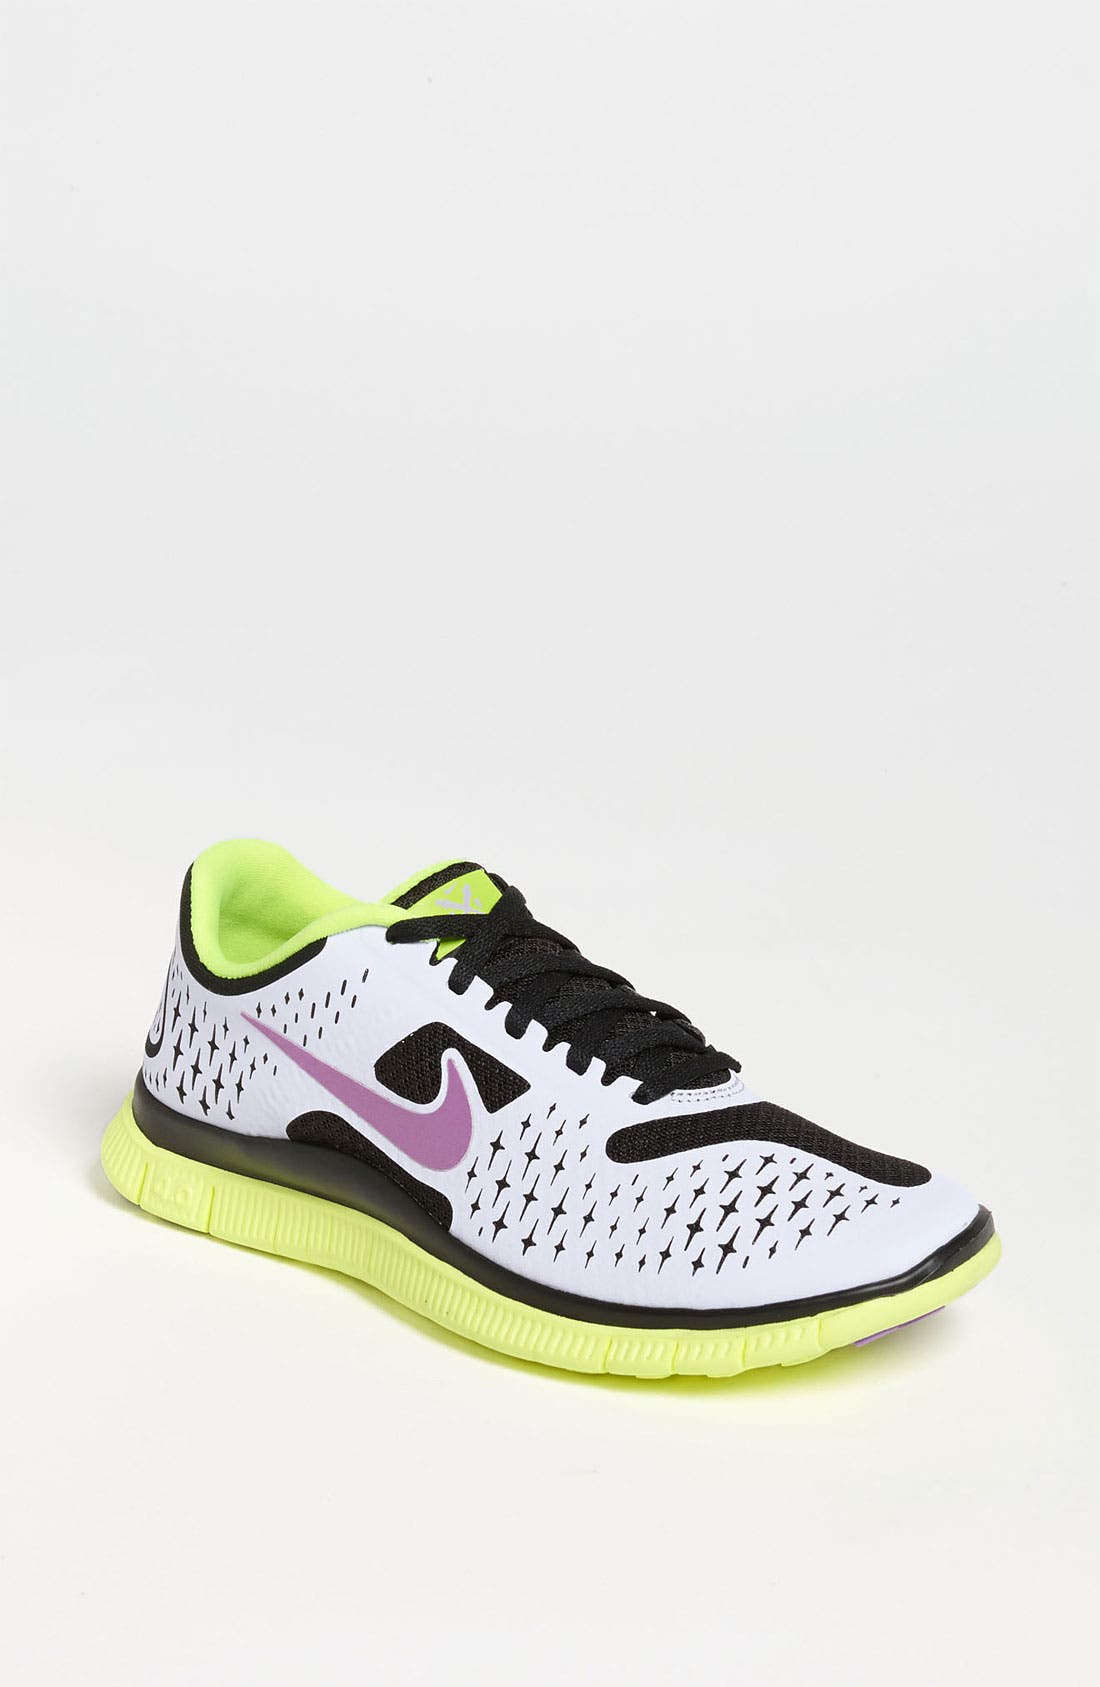 Main Image - Nike 'Free 4.0 V2' Running Shoe (Women)